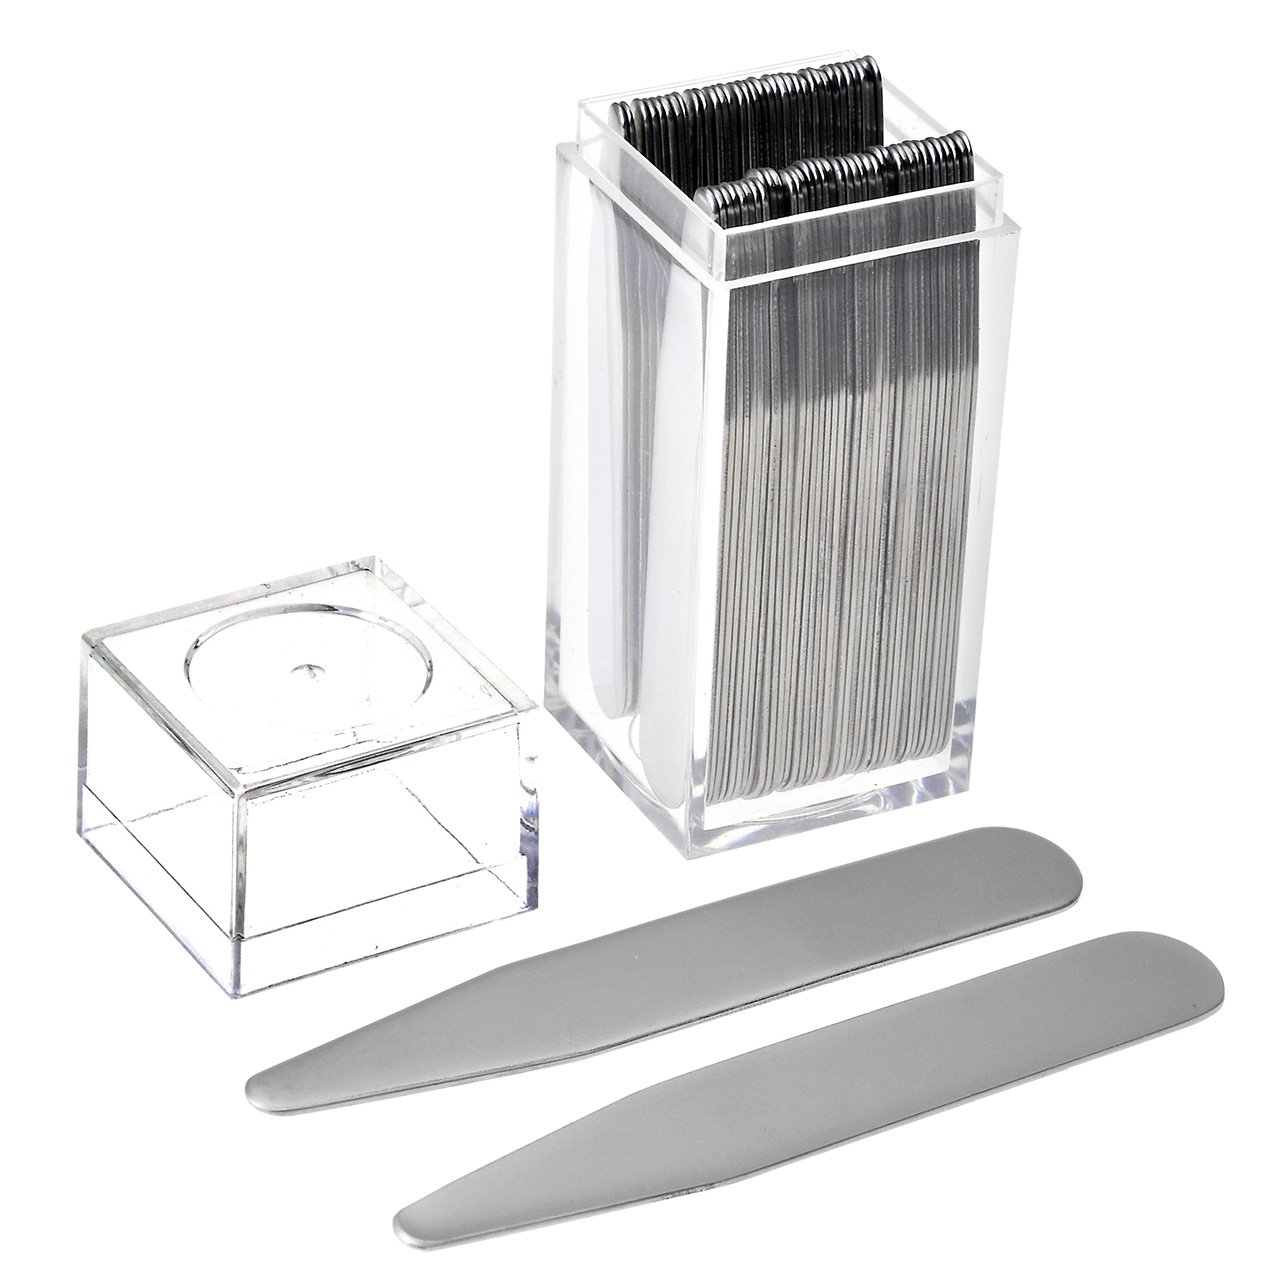 JOVIVI 36pc Stainless Steel Collar Stays in Clear Plastic Box For Mens Dress Shirt, Order the Sizes You Need (2.5'')